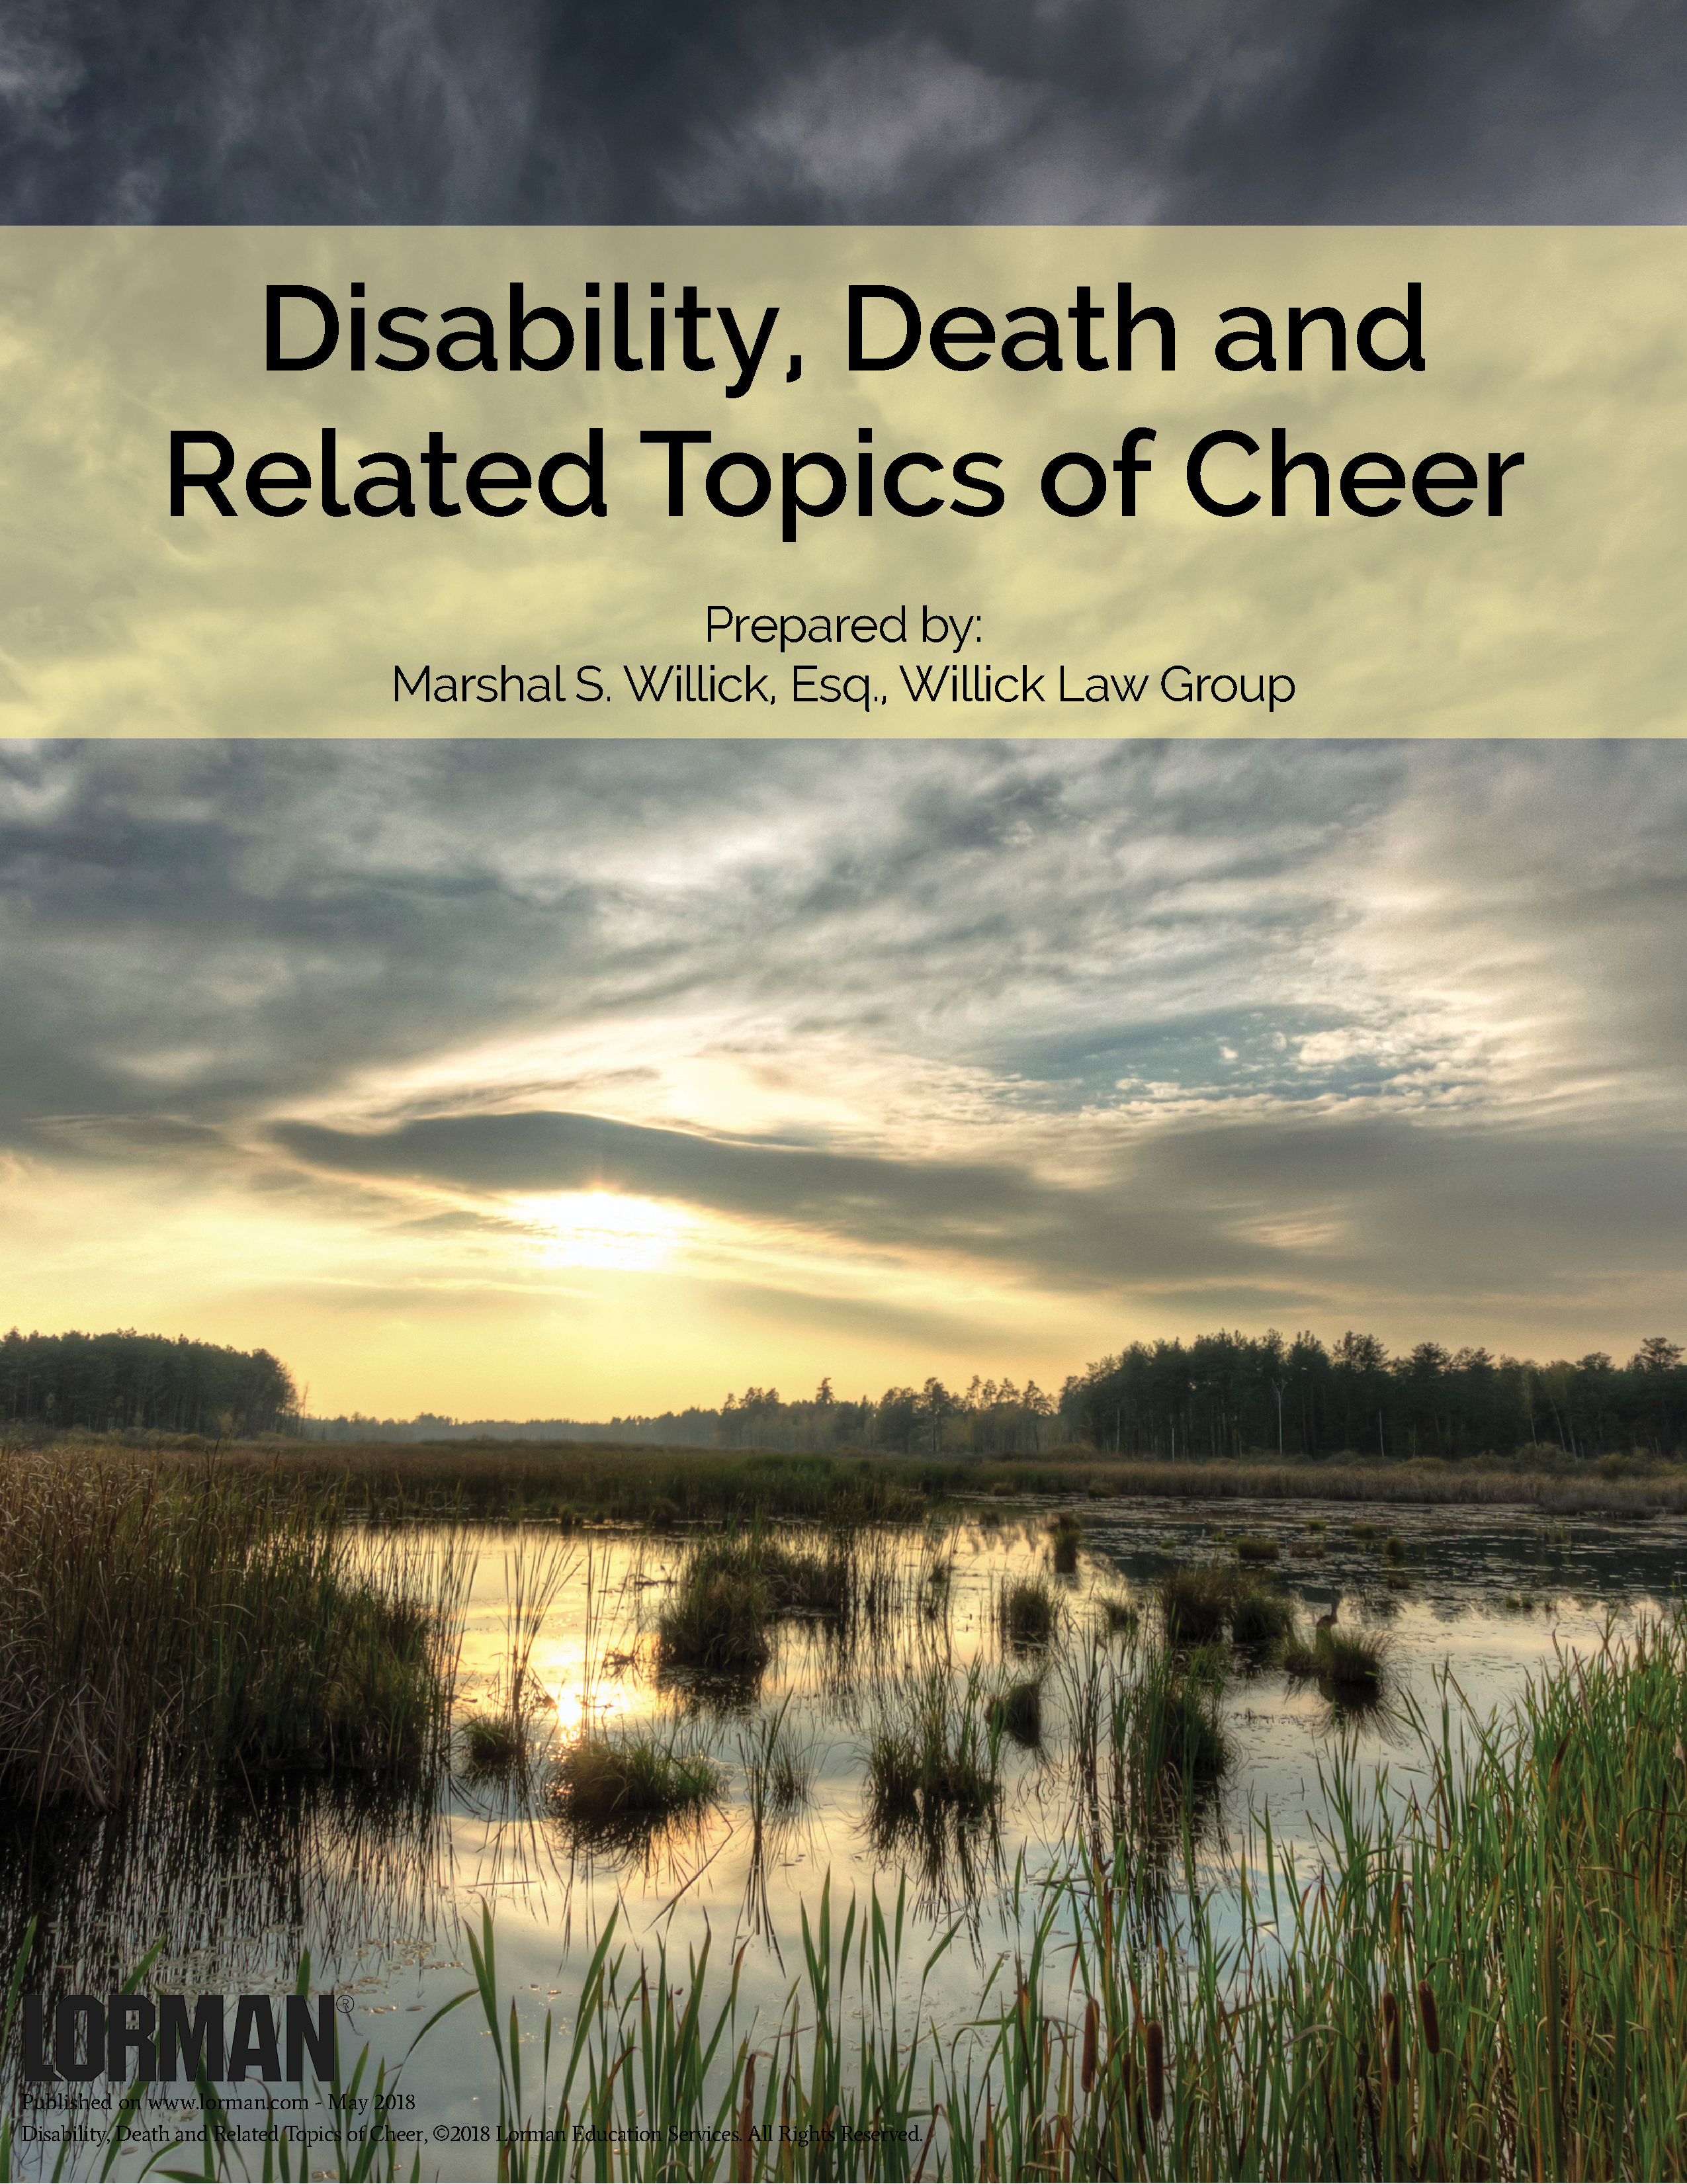 Disability, Death and Related Topics of Cheer